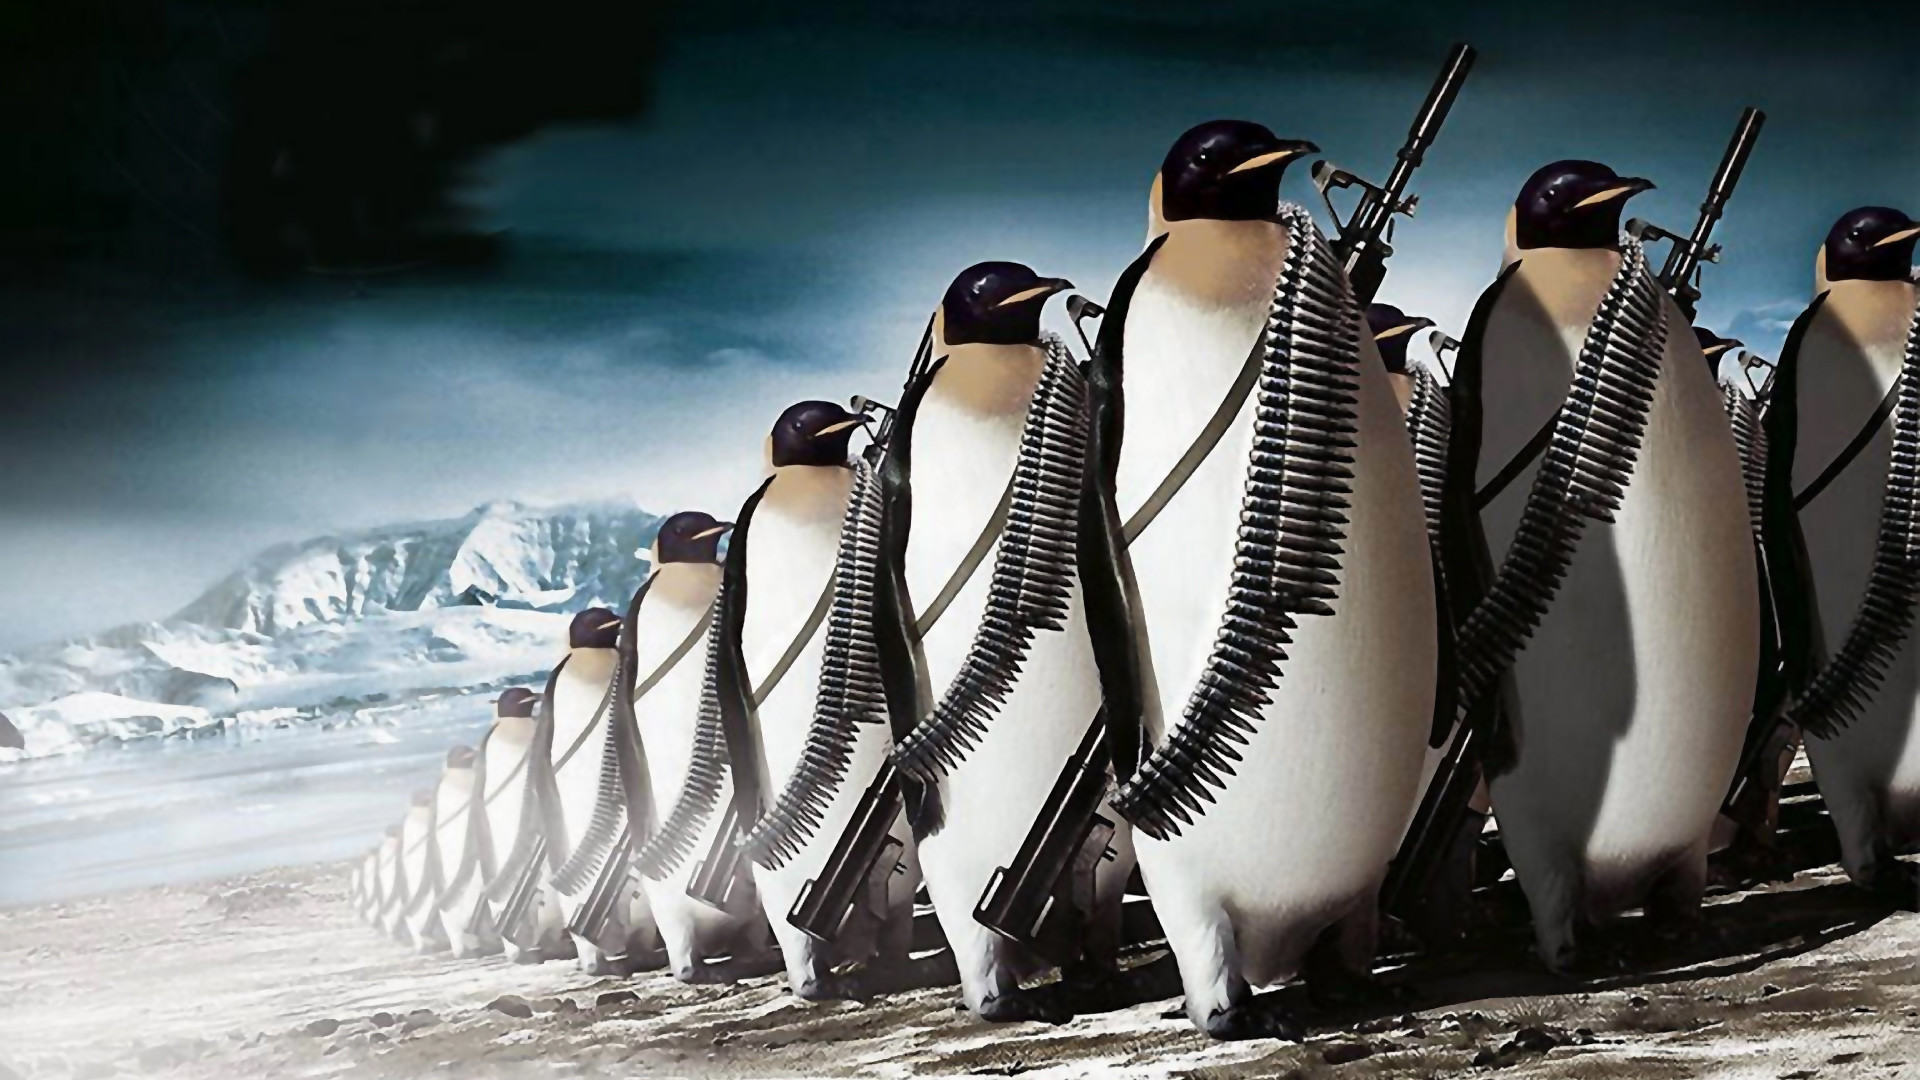 1920x1080 penguins, wallpaper, war, background, paper, images, wallpapers .